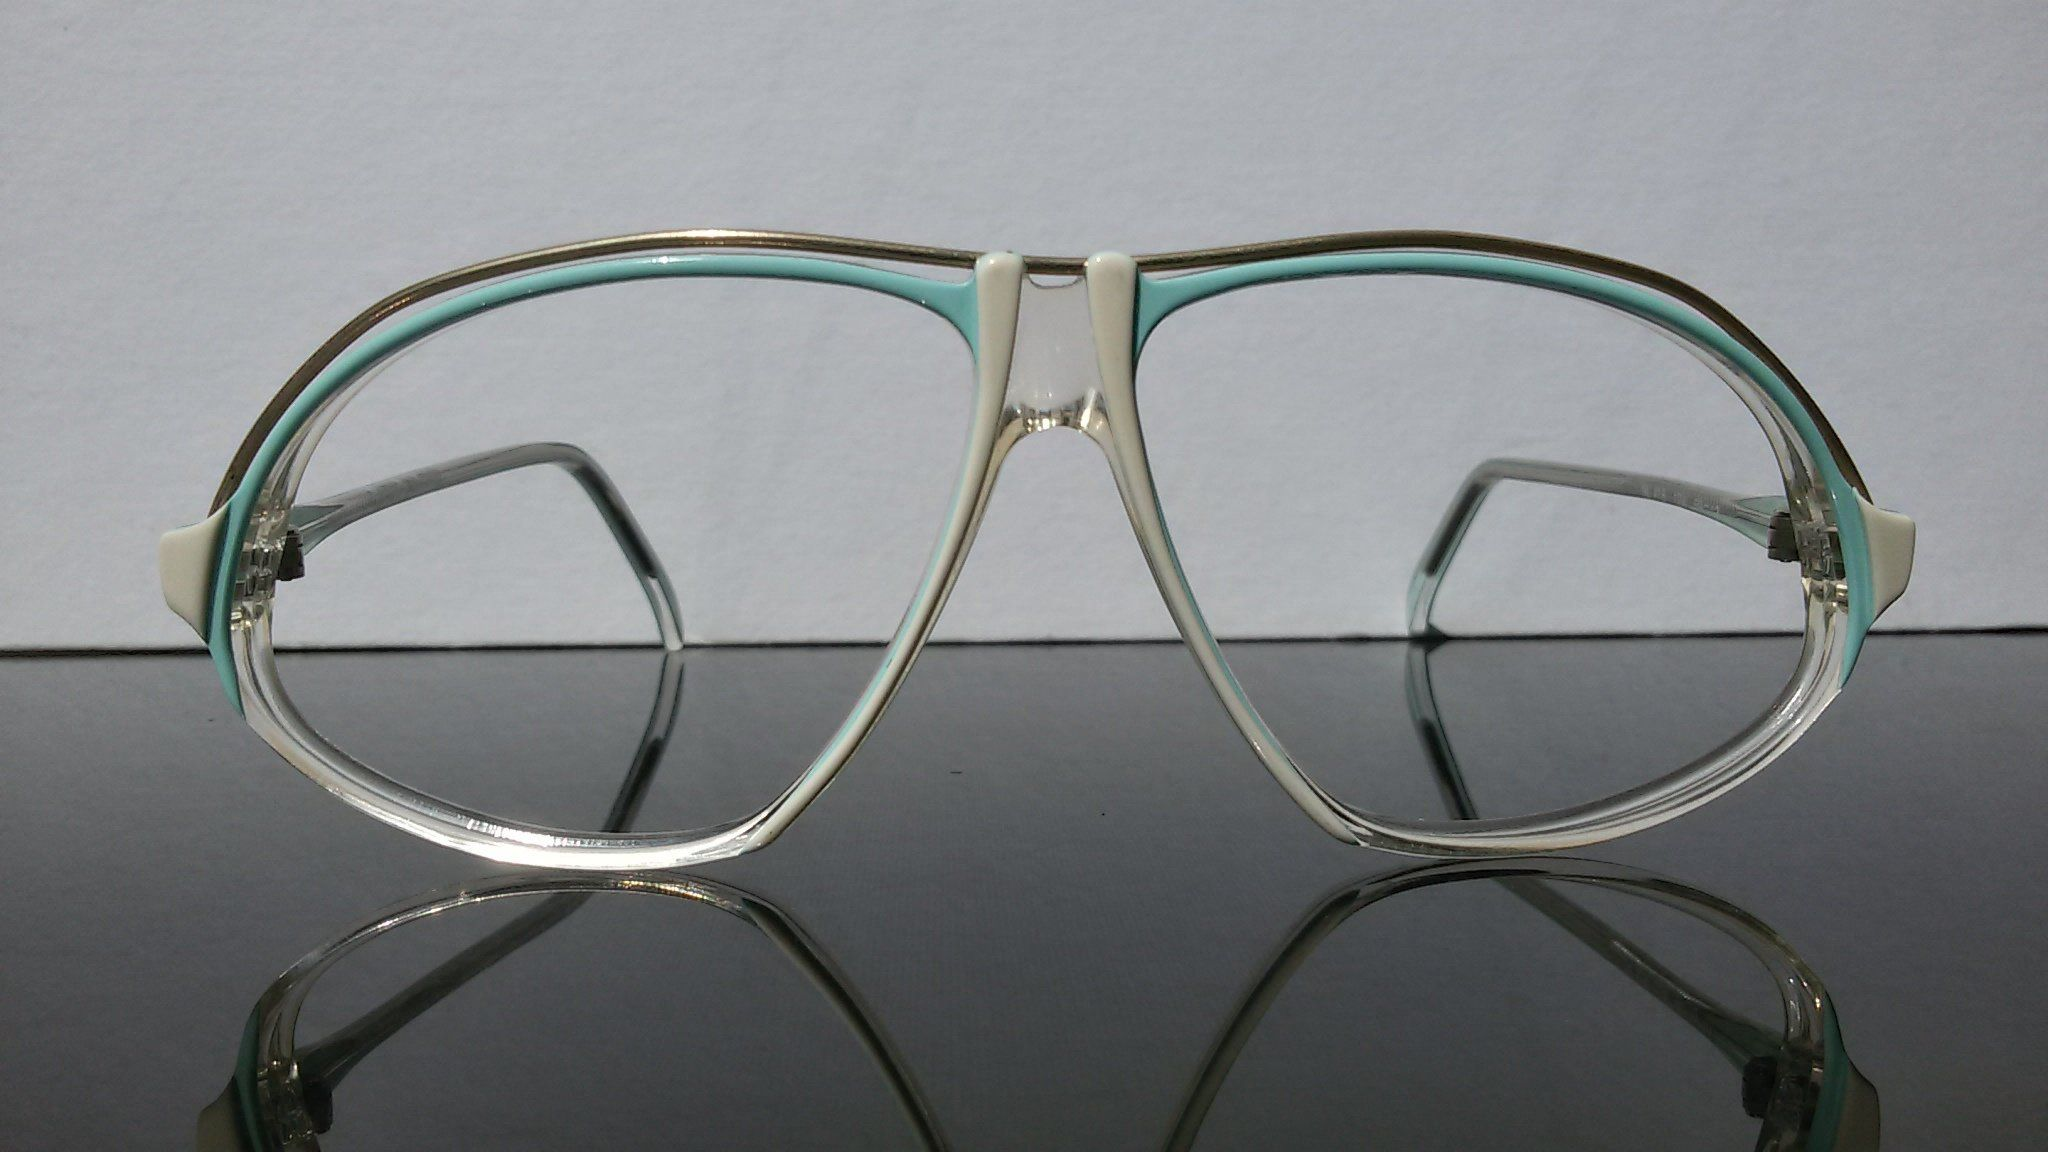 773e47747d €60 Men s eyeglasses for Novelle Ligne. Aviator shape in white and pale  blue. The top of the frame is decorated with gold colored wire.